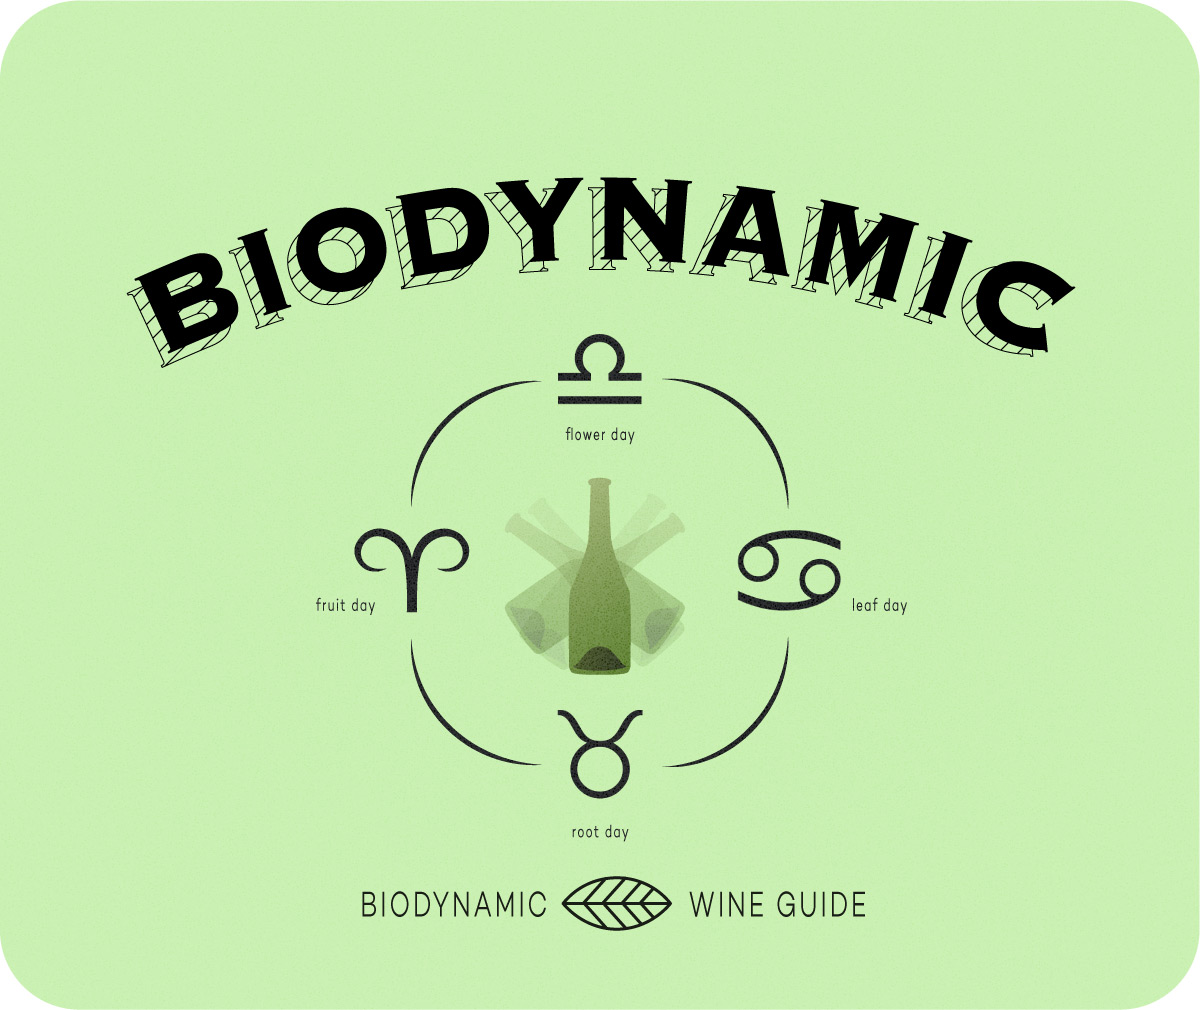 biodynamic-wine-guide.jpg